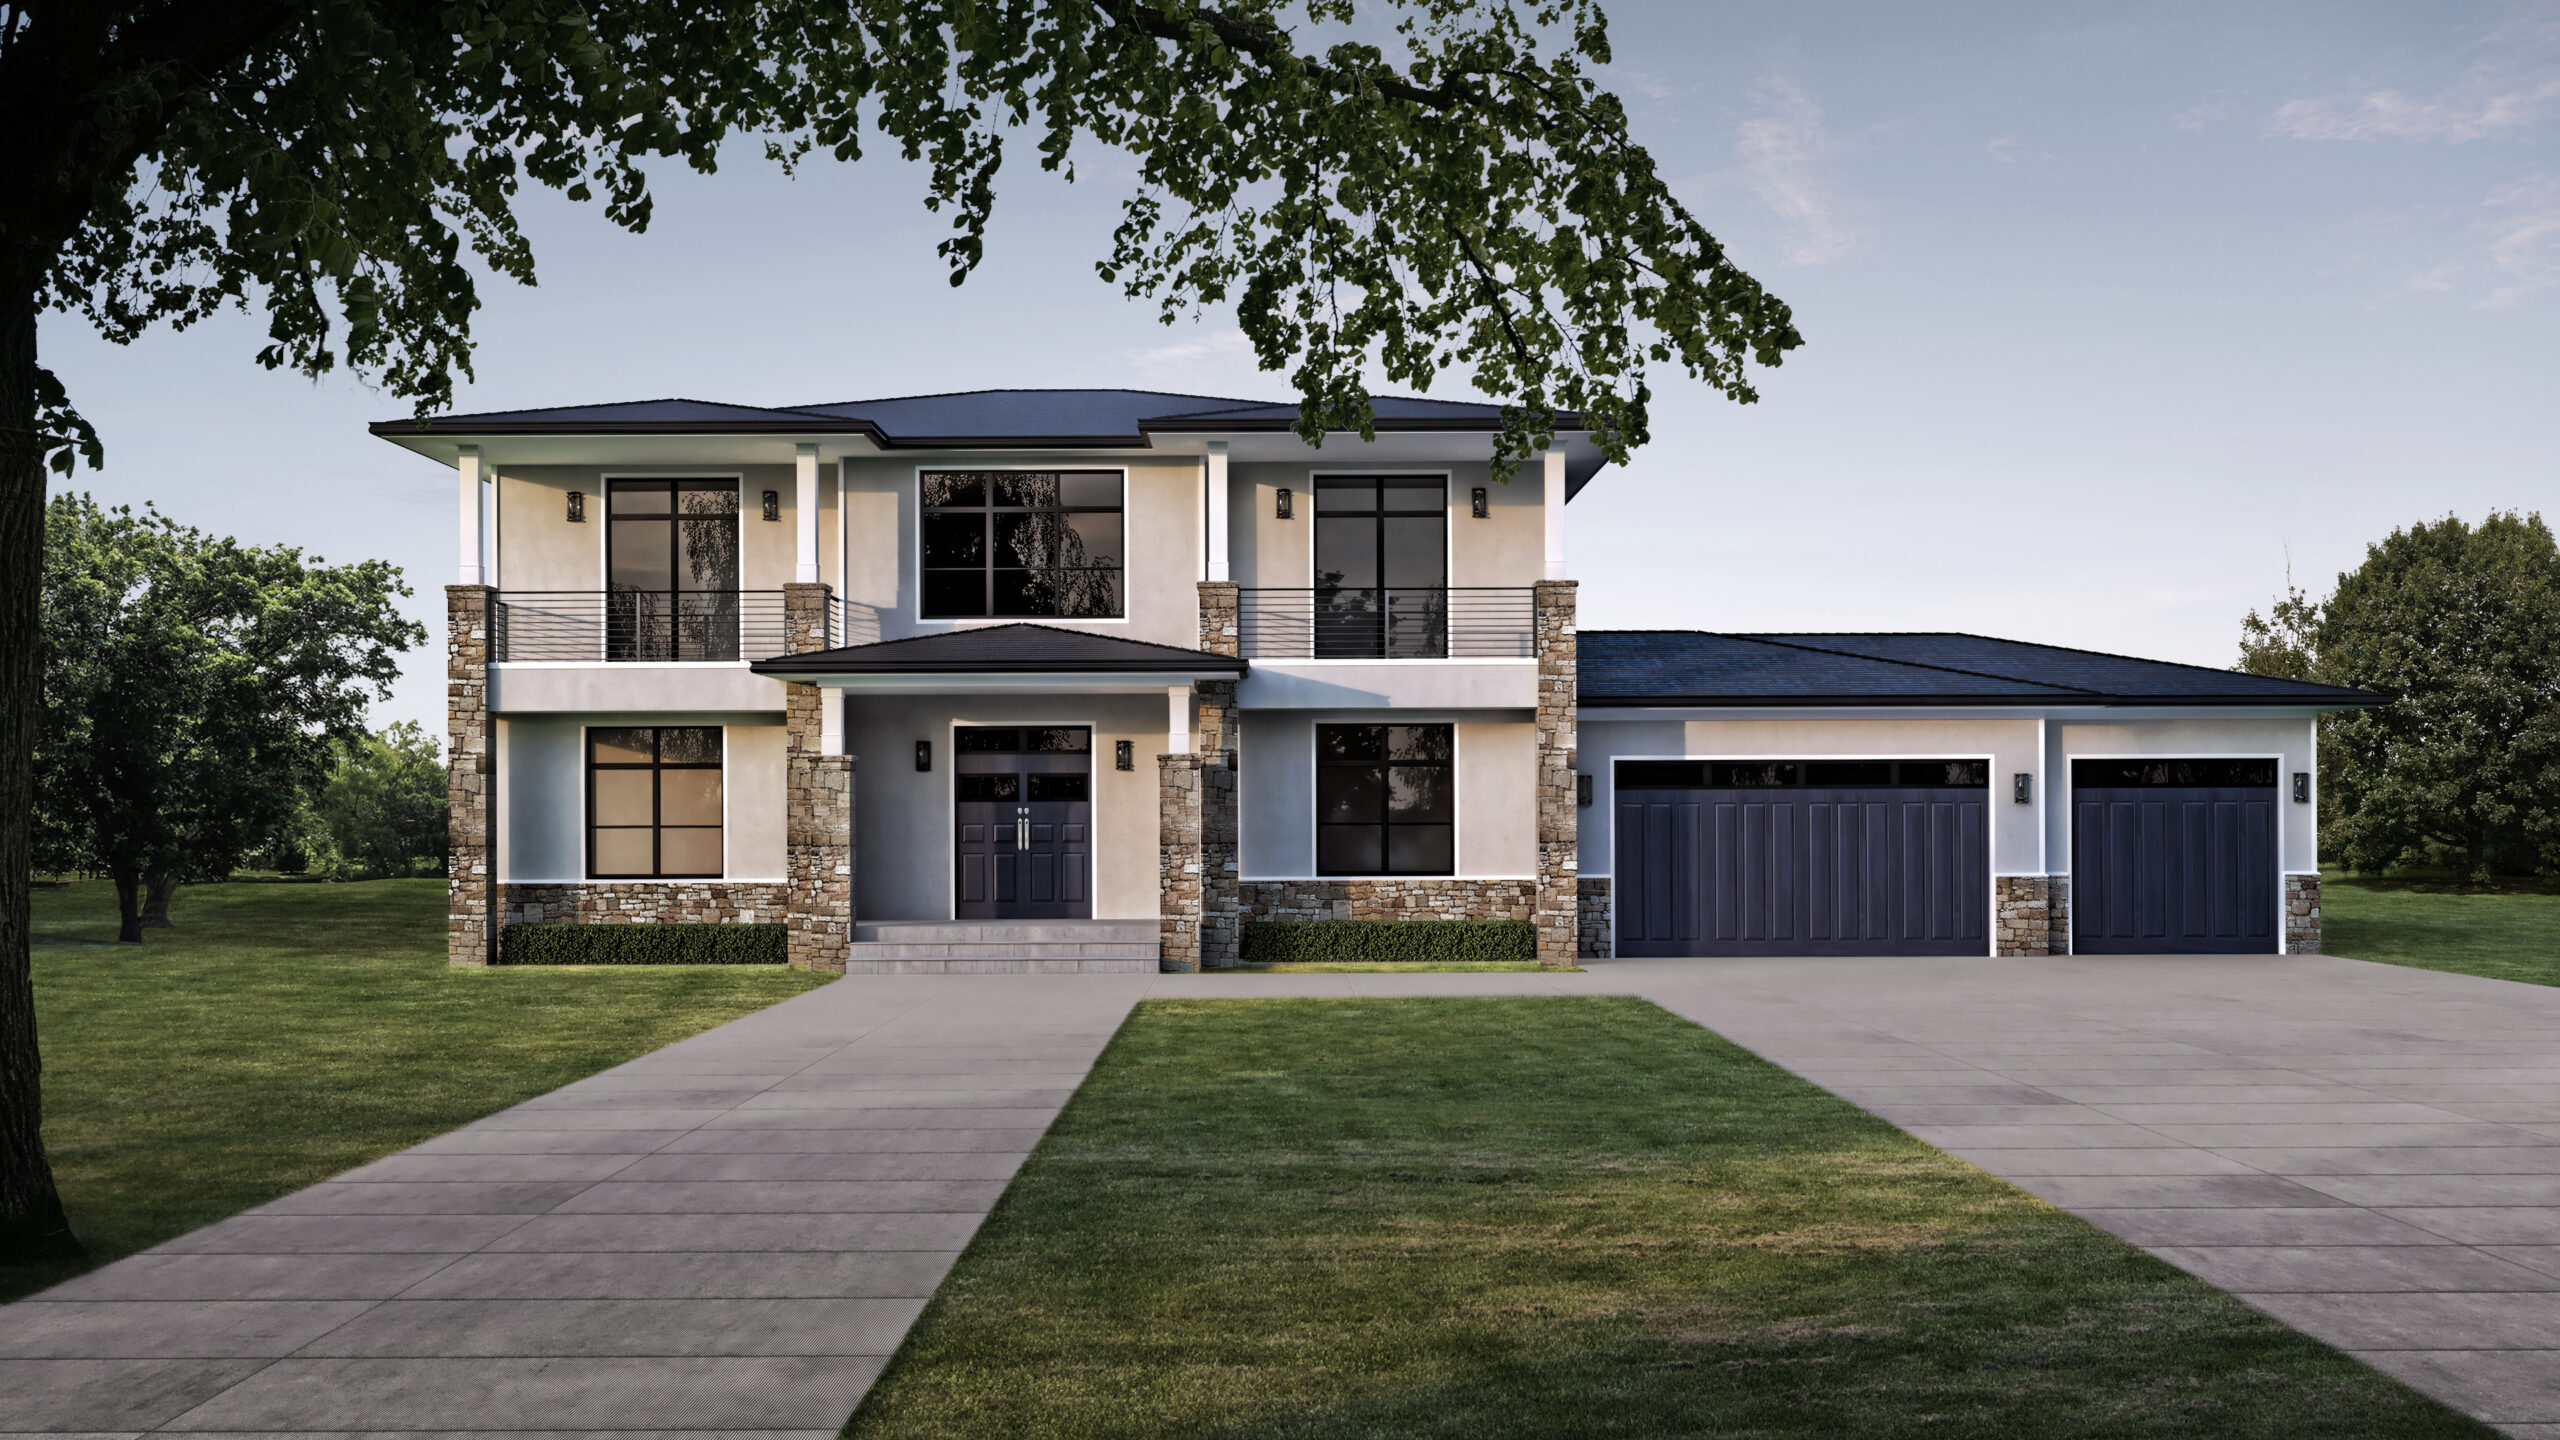 Model 3 – 3,884 sq. ft. 2 Story – 4 Bedroom, 3 ½ Bath, Panoramic doors to large rear deck -Contemp.